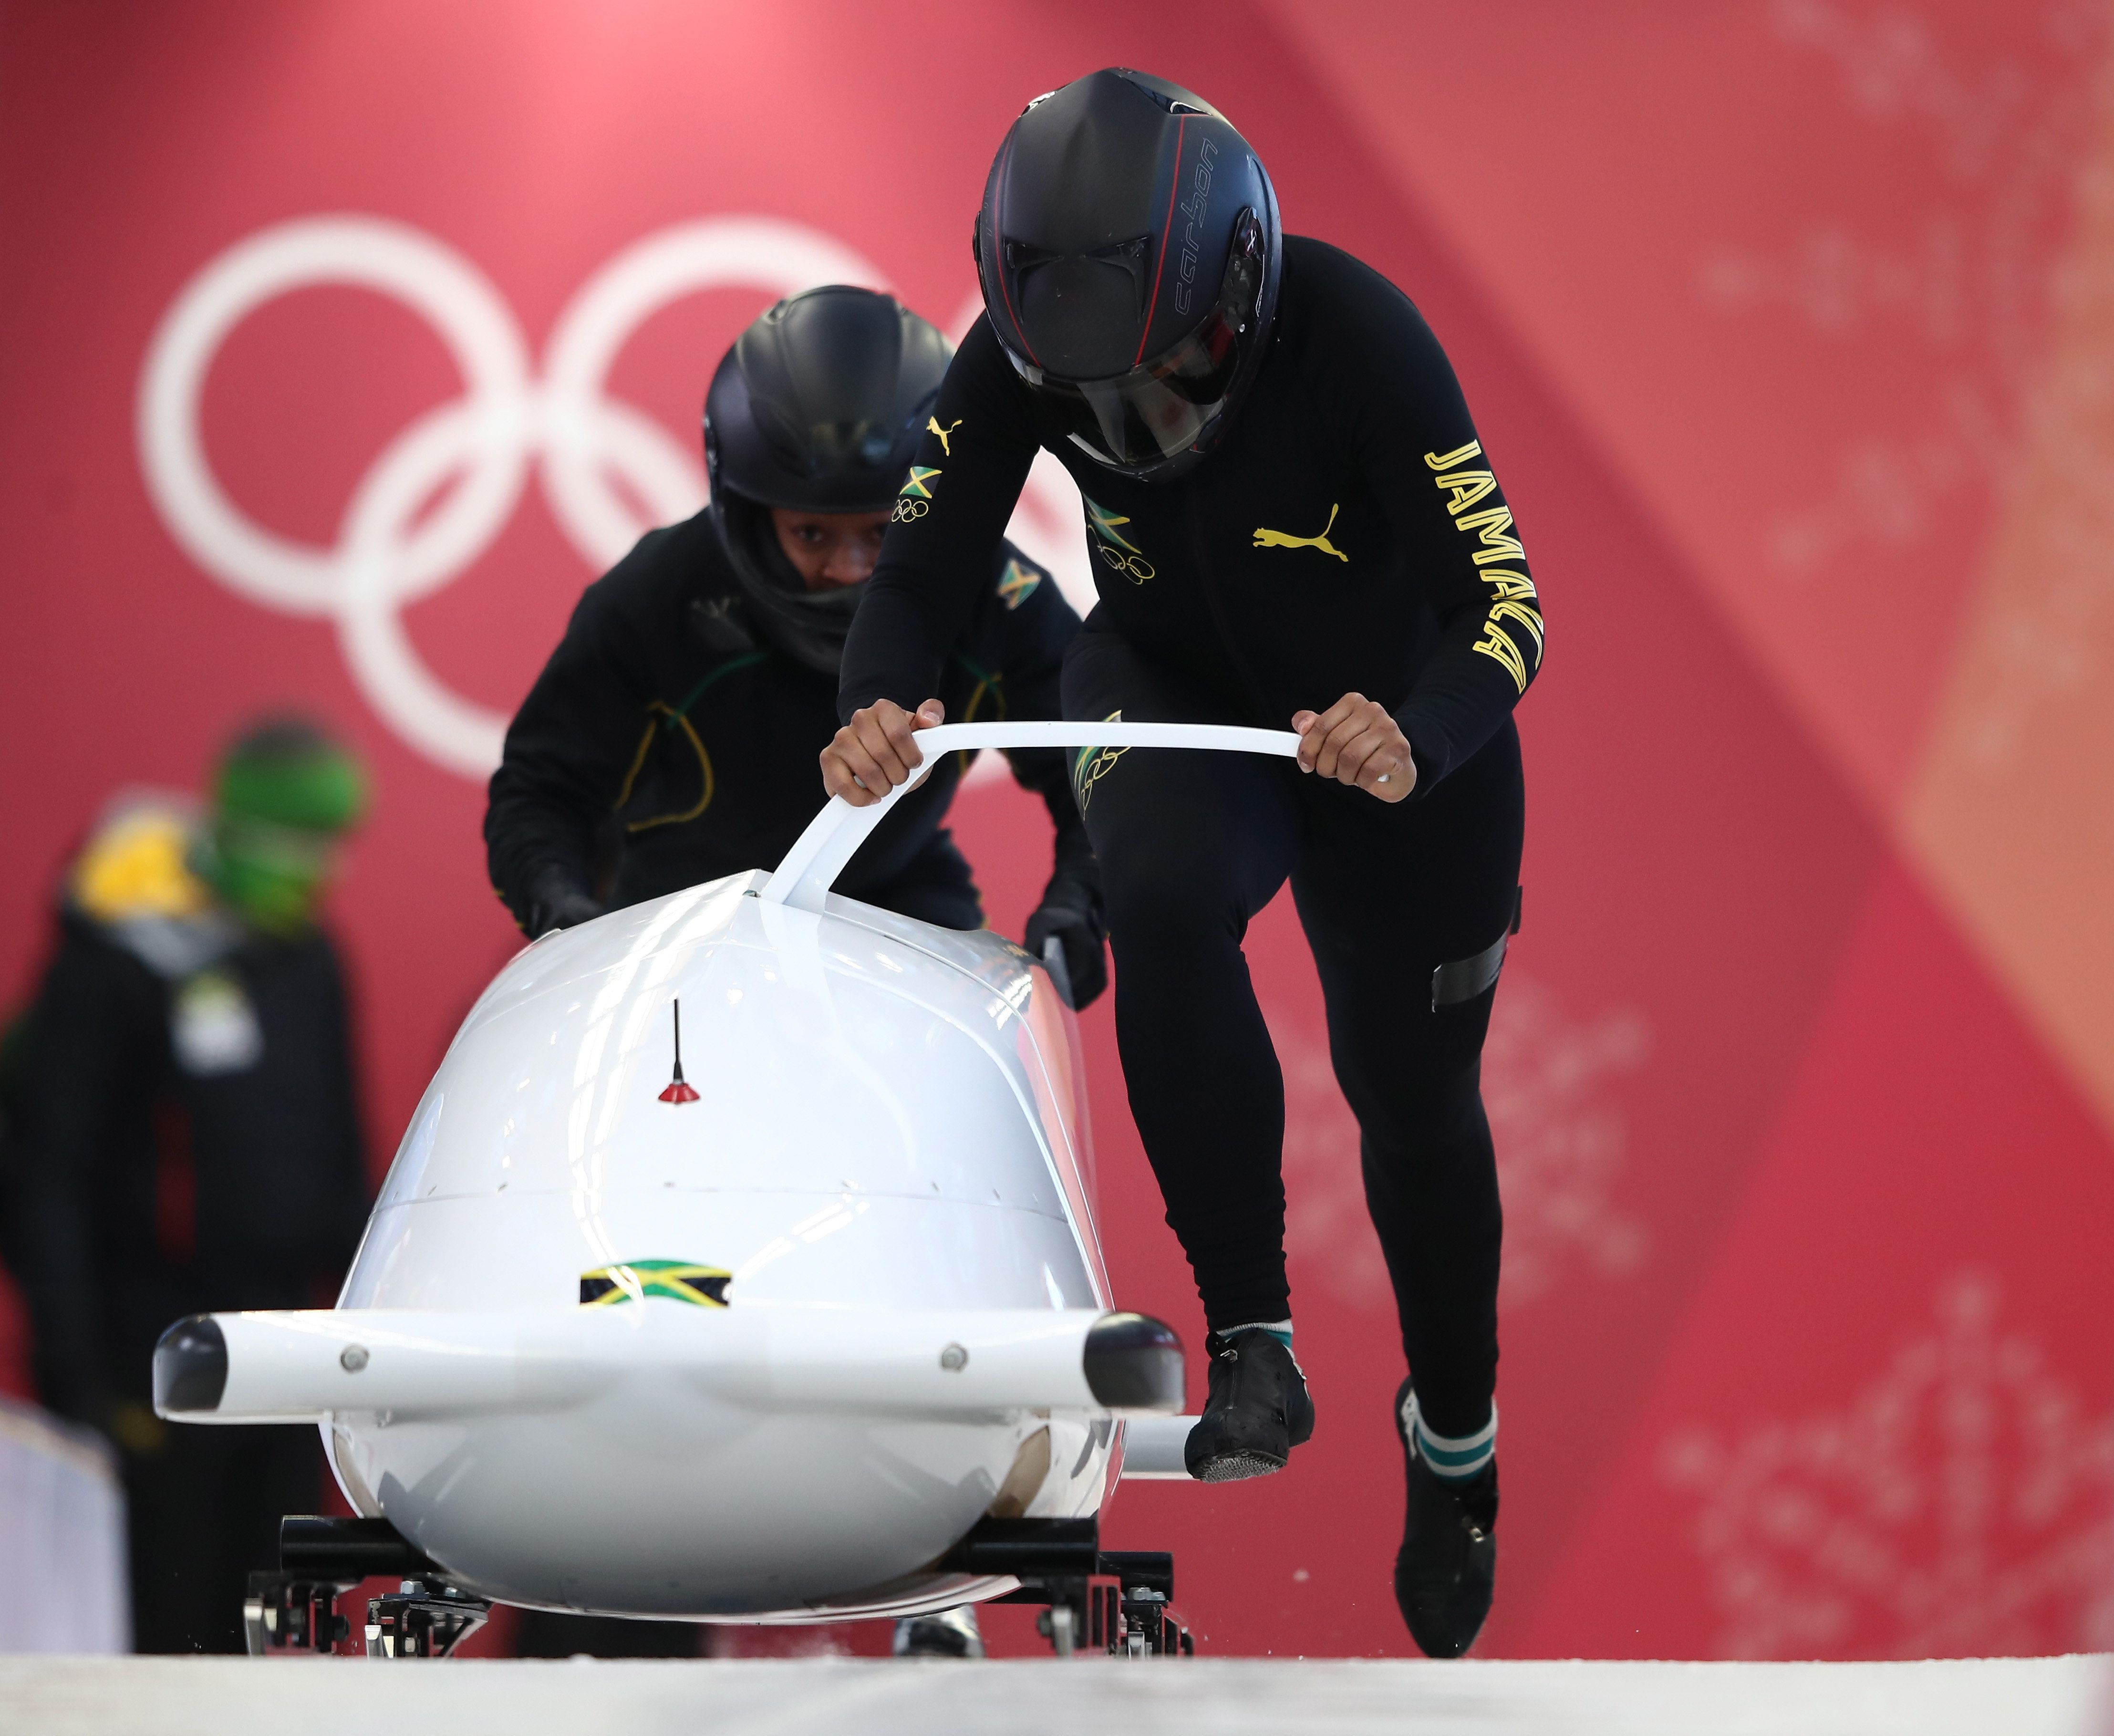 PYEONGCHANG-GUN, SOUTH KOREA - FEBRUARY 07:  Jazmine Fenlator-Victoria of Jamaica trains during Bobsleigh practice ahead of the PyeongChang 2018 Winter Olympic Games at Olympic Sliding Centre on February 7, 2018 in Pyeongchang-gun, South Korea.  (Photo by Clive Mason/Getty Images)